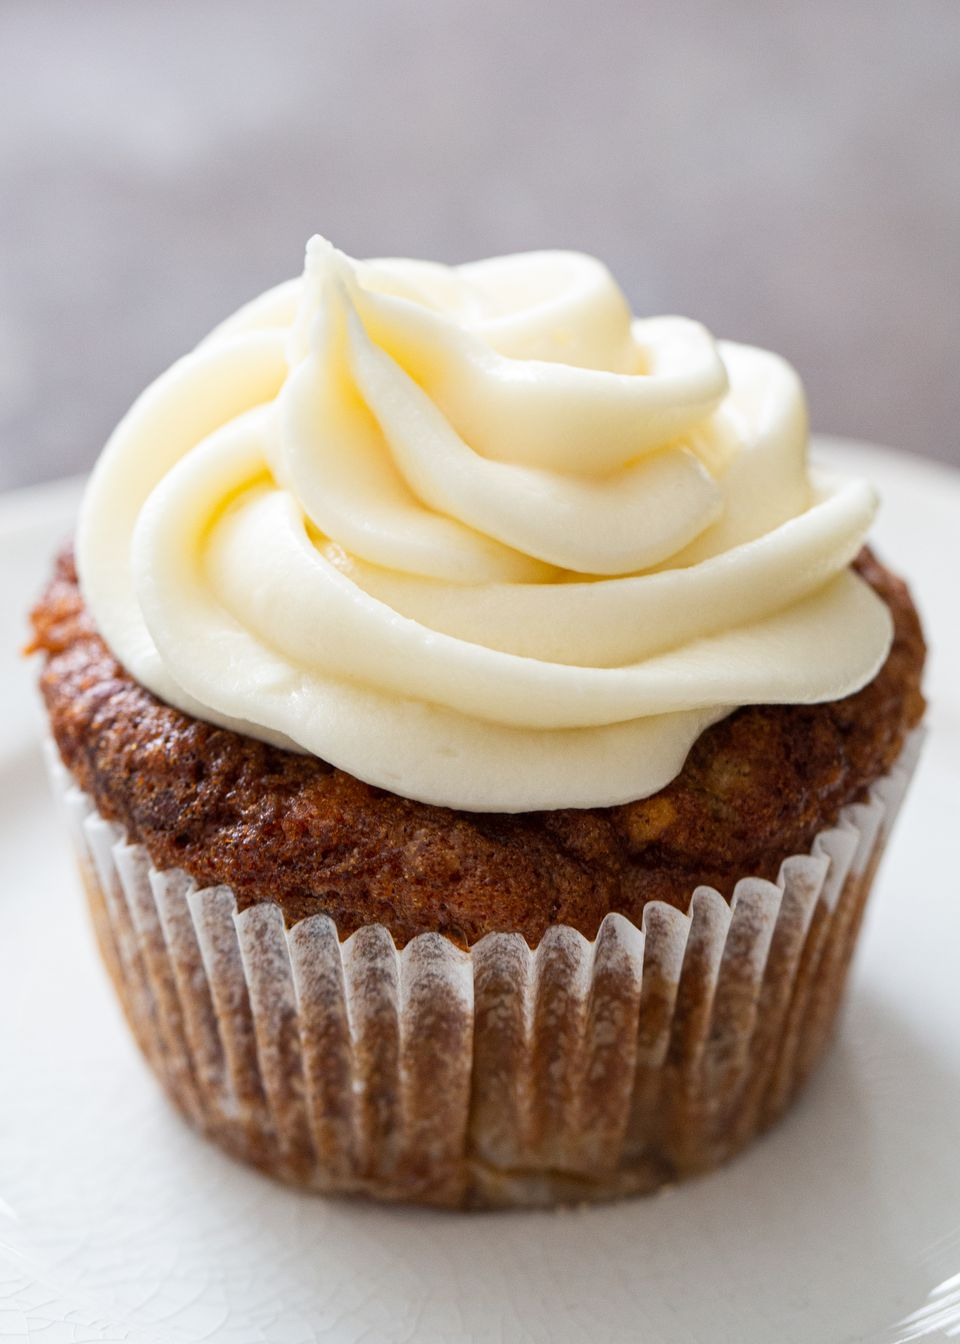 Cream Cheese Icing piped onto the top of a cupcake